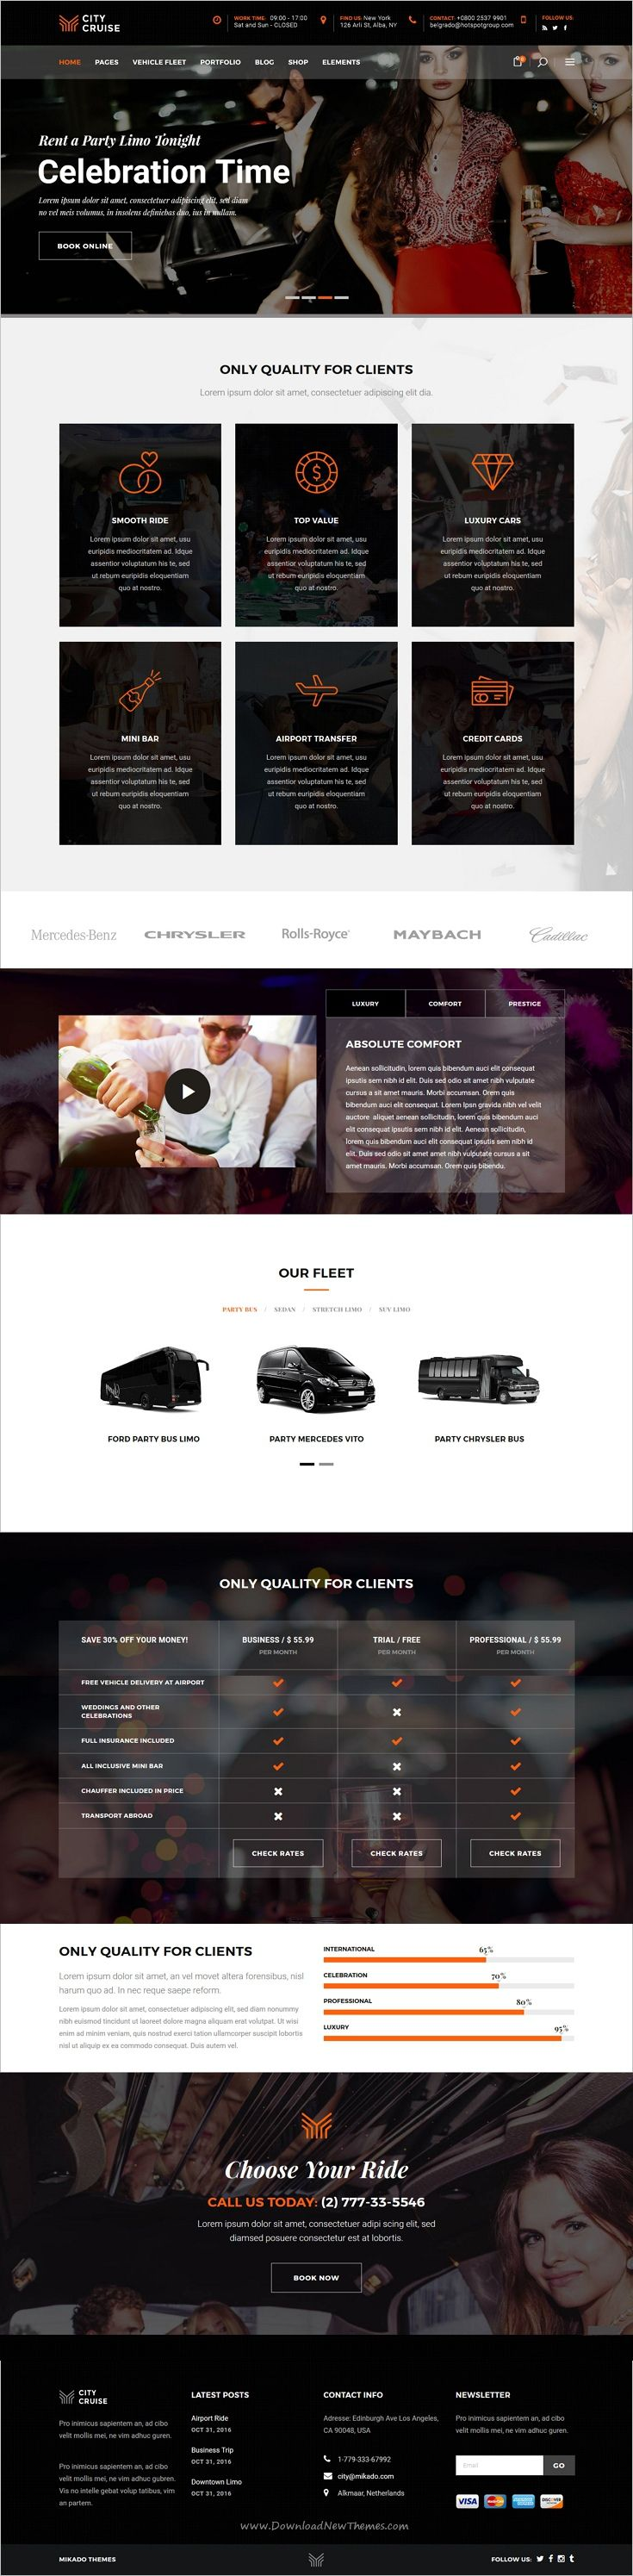 City cruise is elegant and modern design 3in1 responsive #WordPress theme for #limousine and car #rental service agencies website download now➩ https://themeforest.net/item/city-cruise-a-limousine-and-car-rental-theme/19746171?ref=Datasata